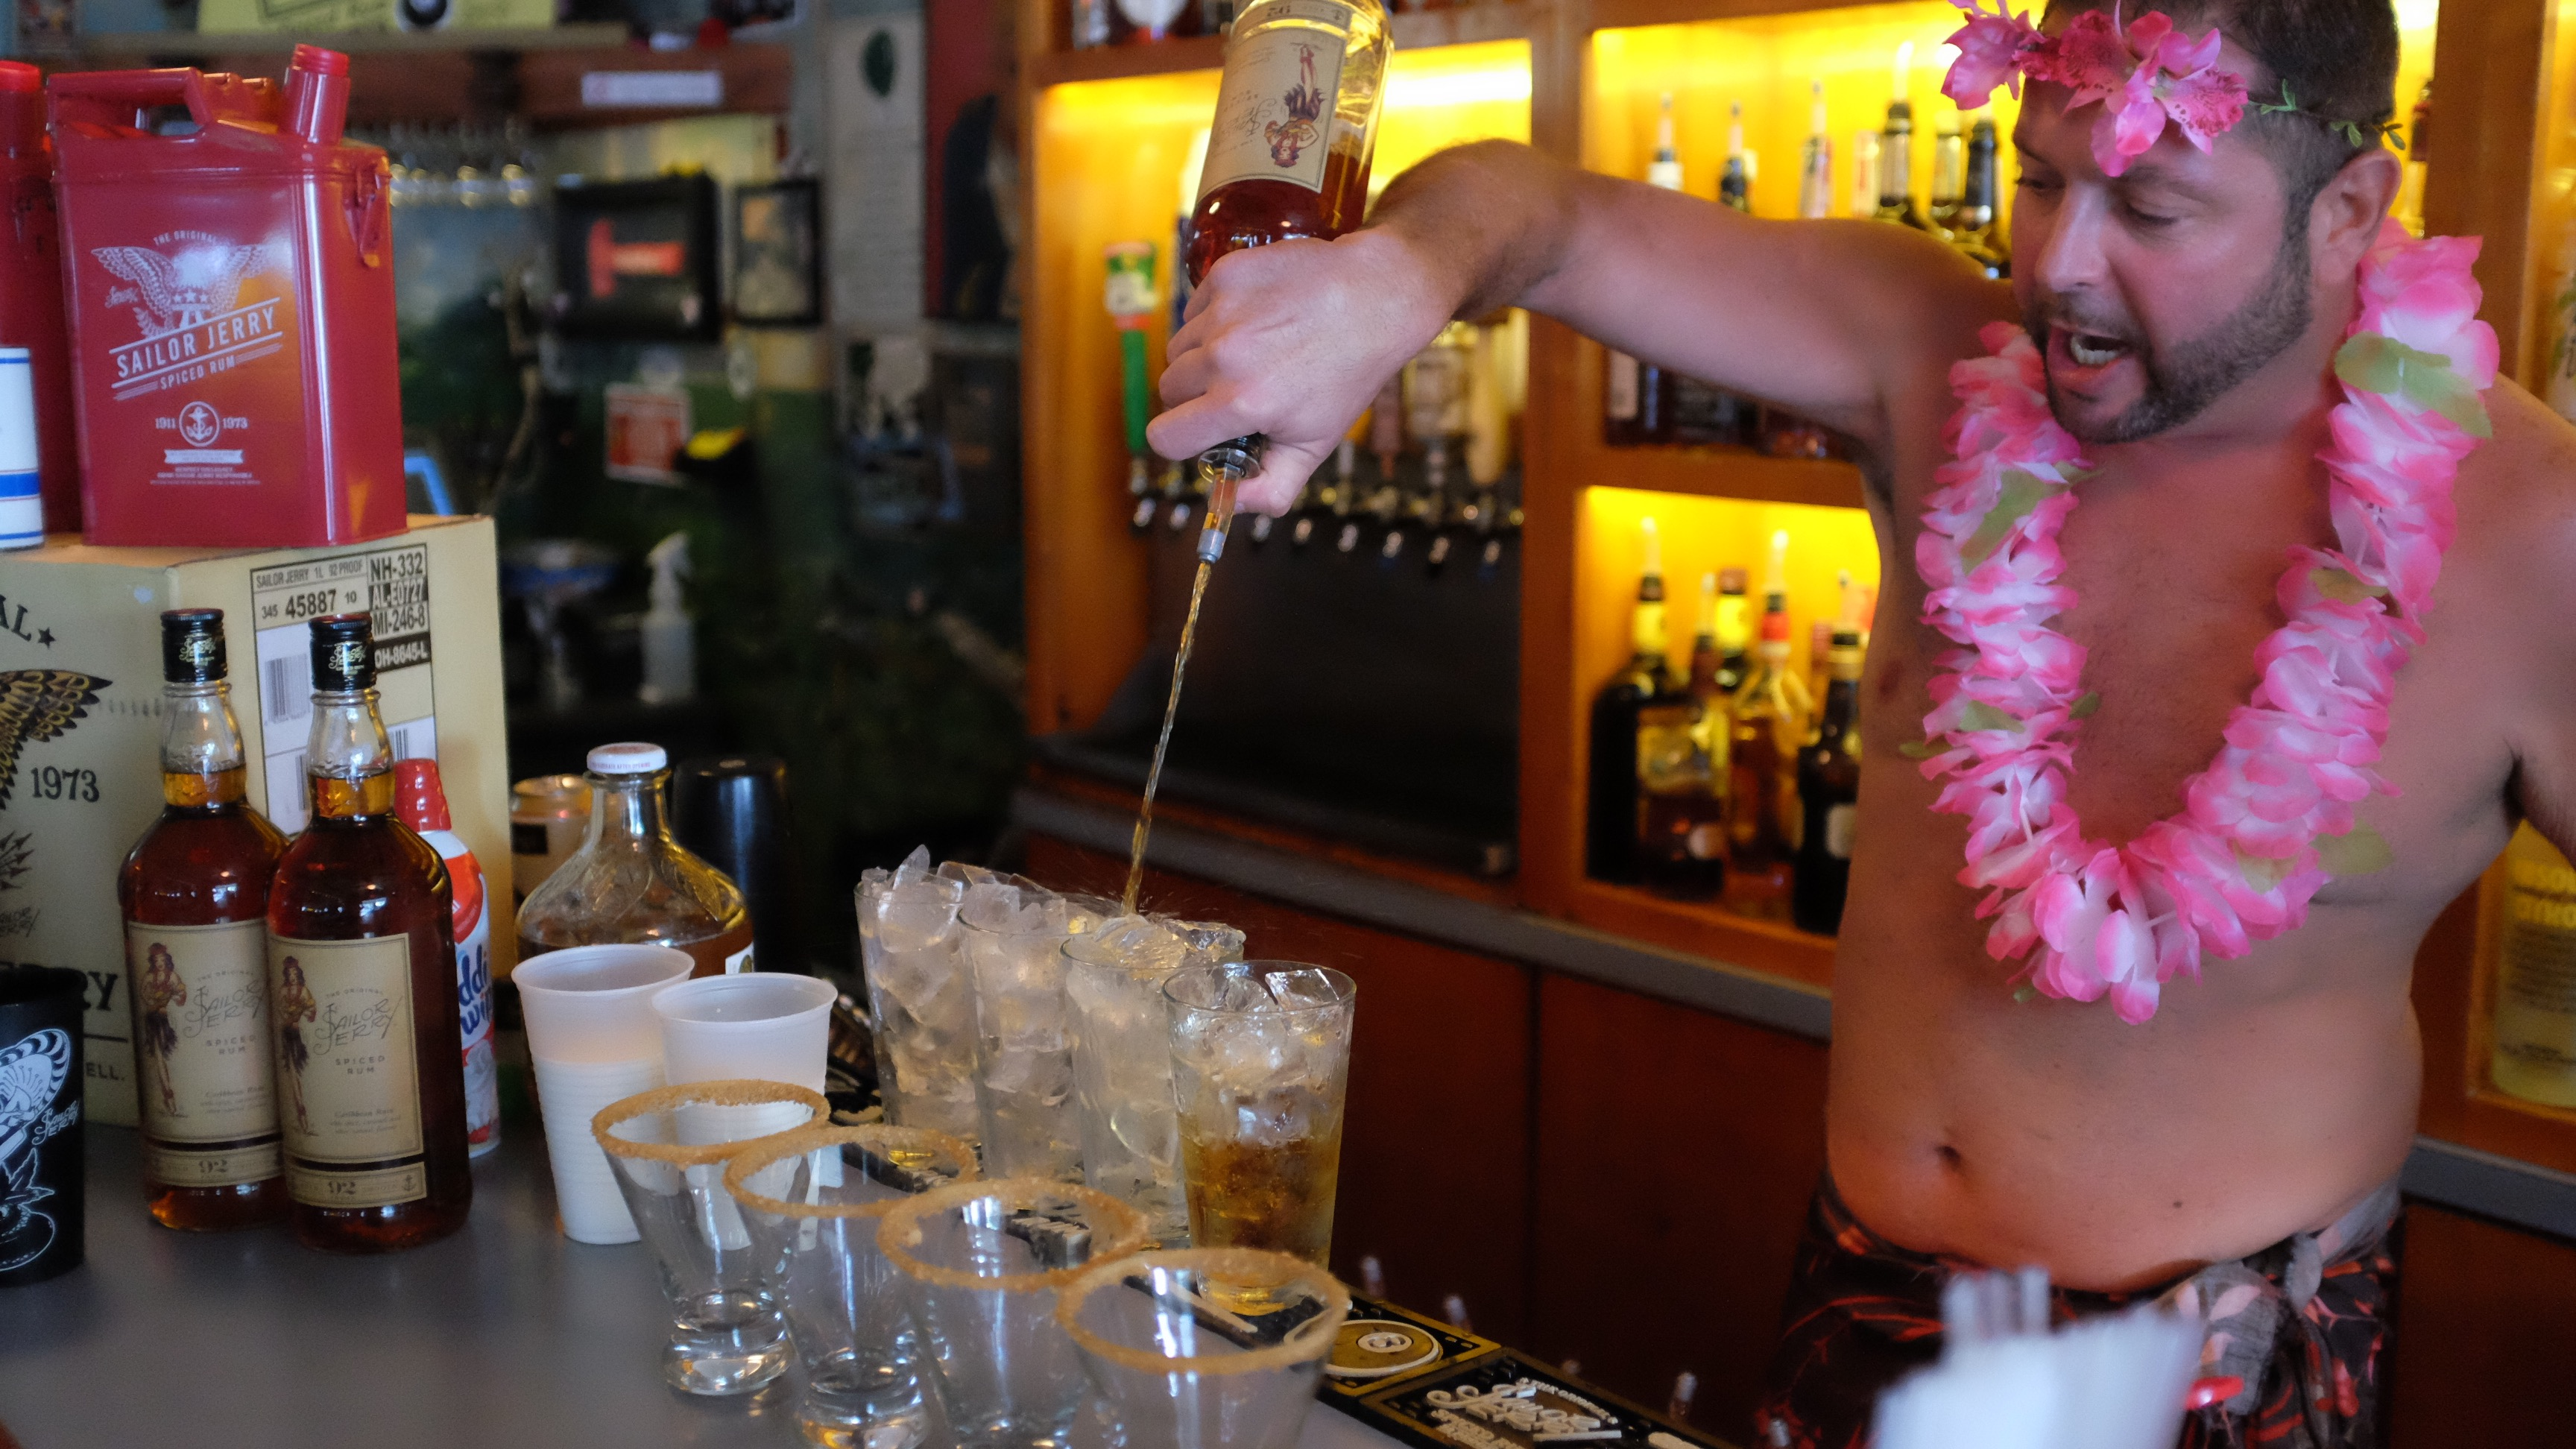 Sailor Jerry Quot Roll With The Punches Quot Bartenders